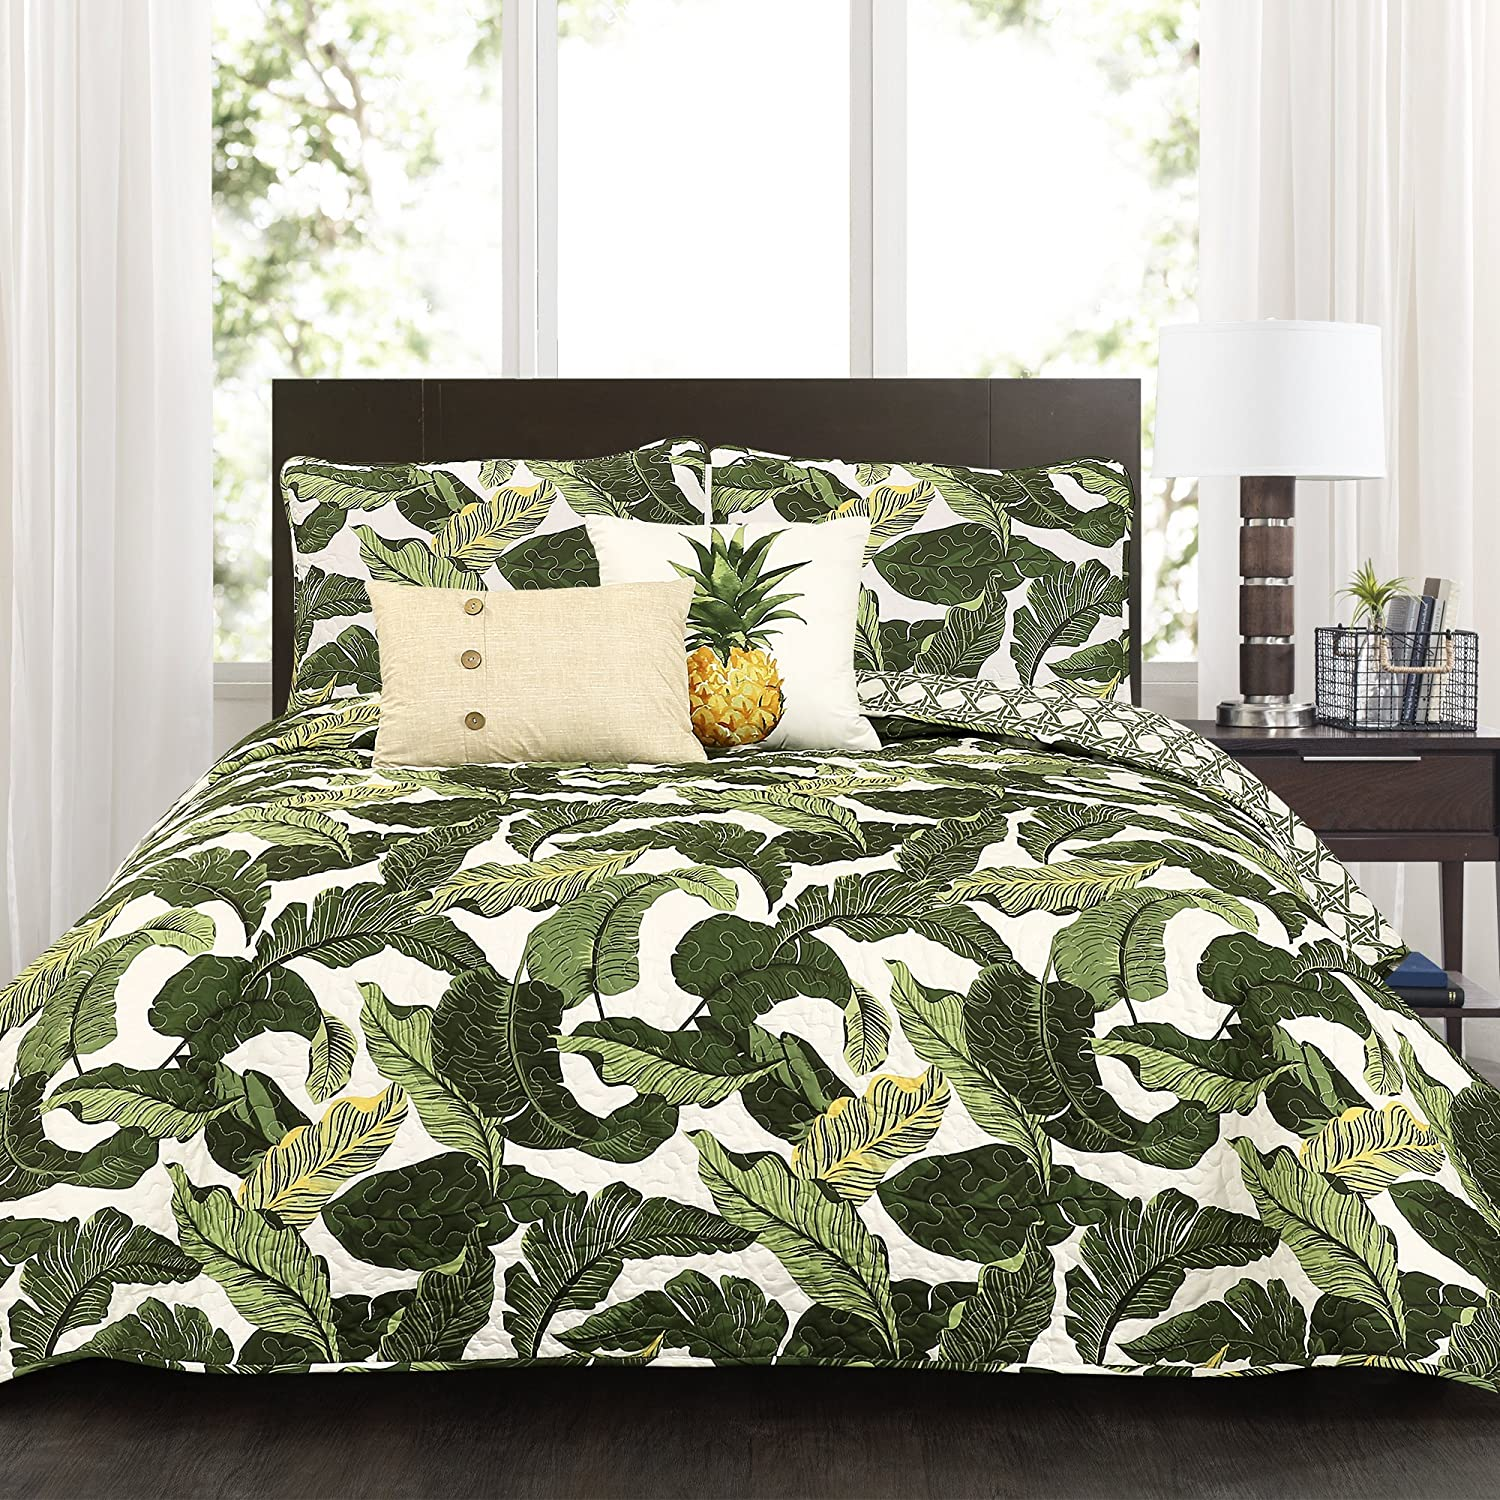 Lush Decor Tropical Paradise Quilt-Leaf Palm Rainforest Reversible 5 Piece Bedding Set-King-Green